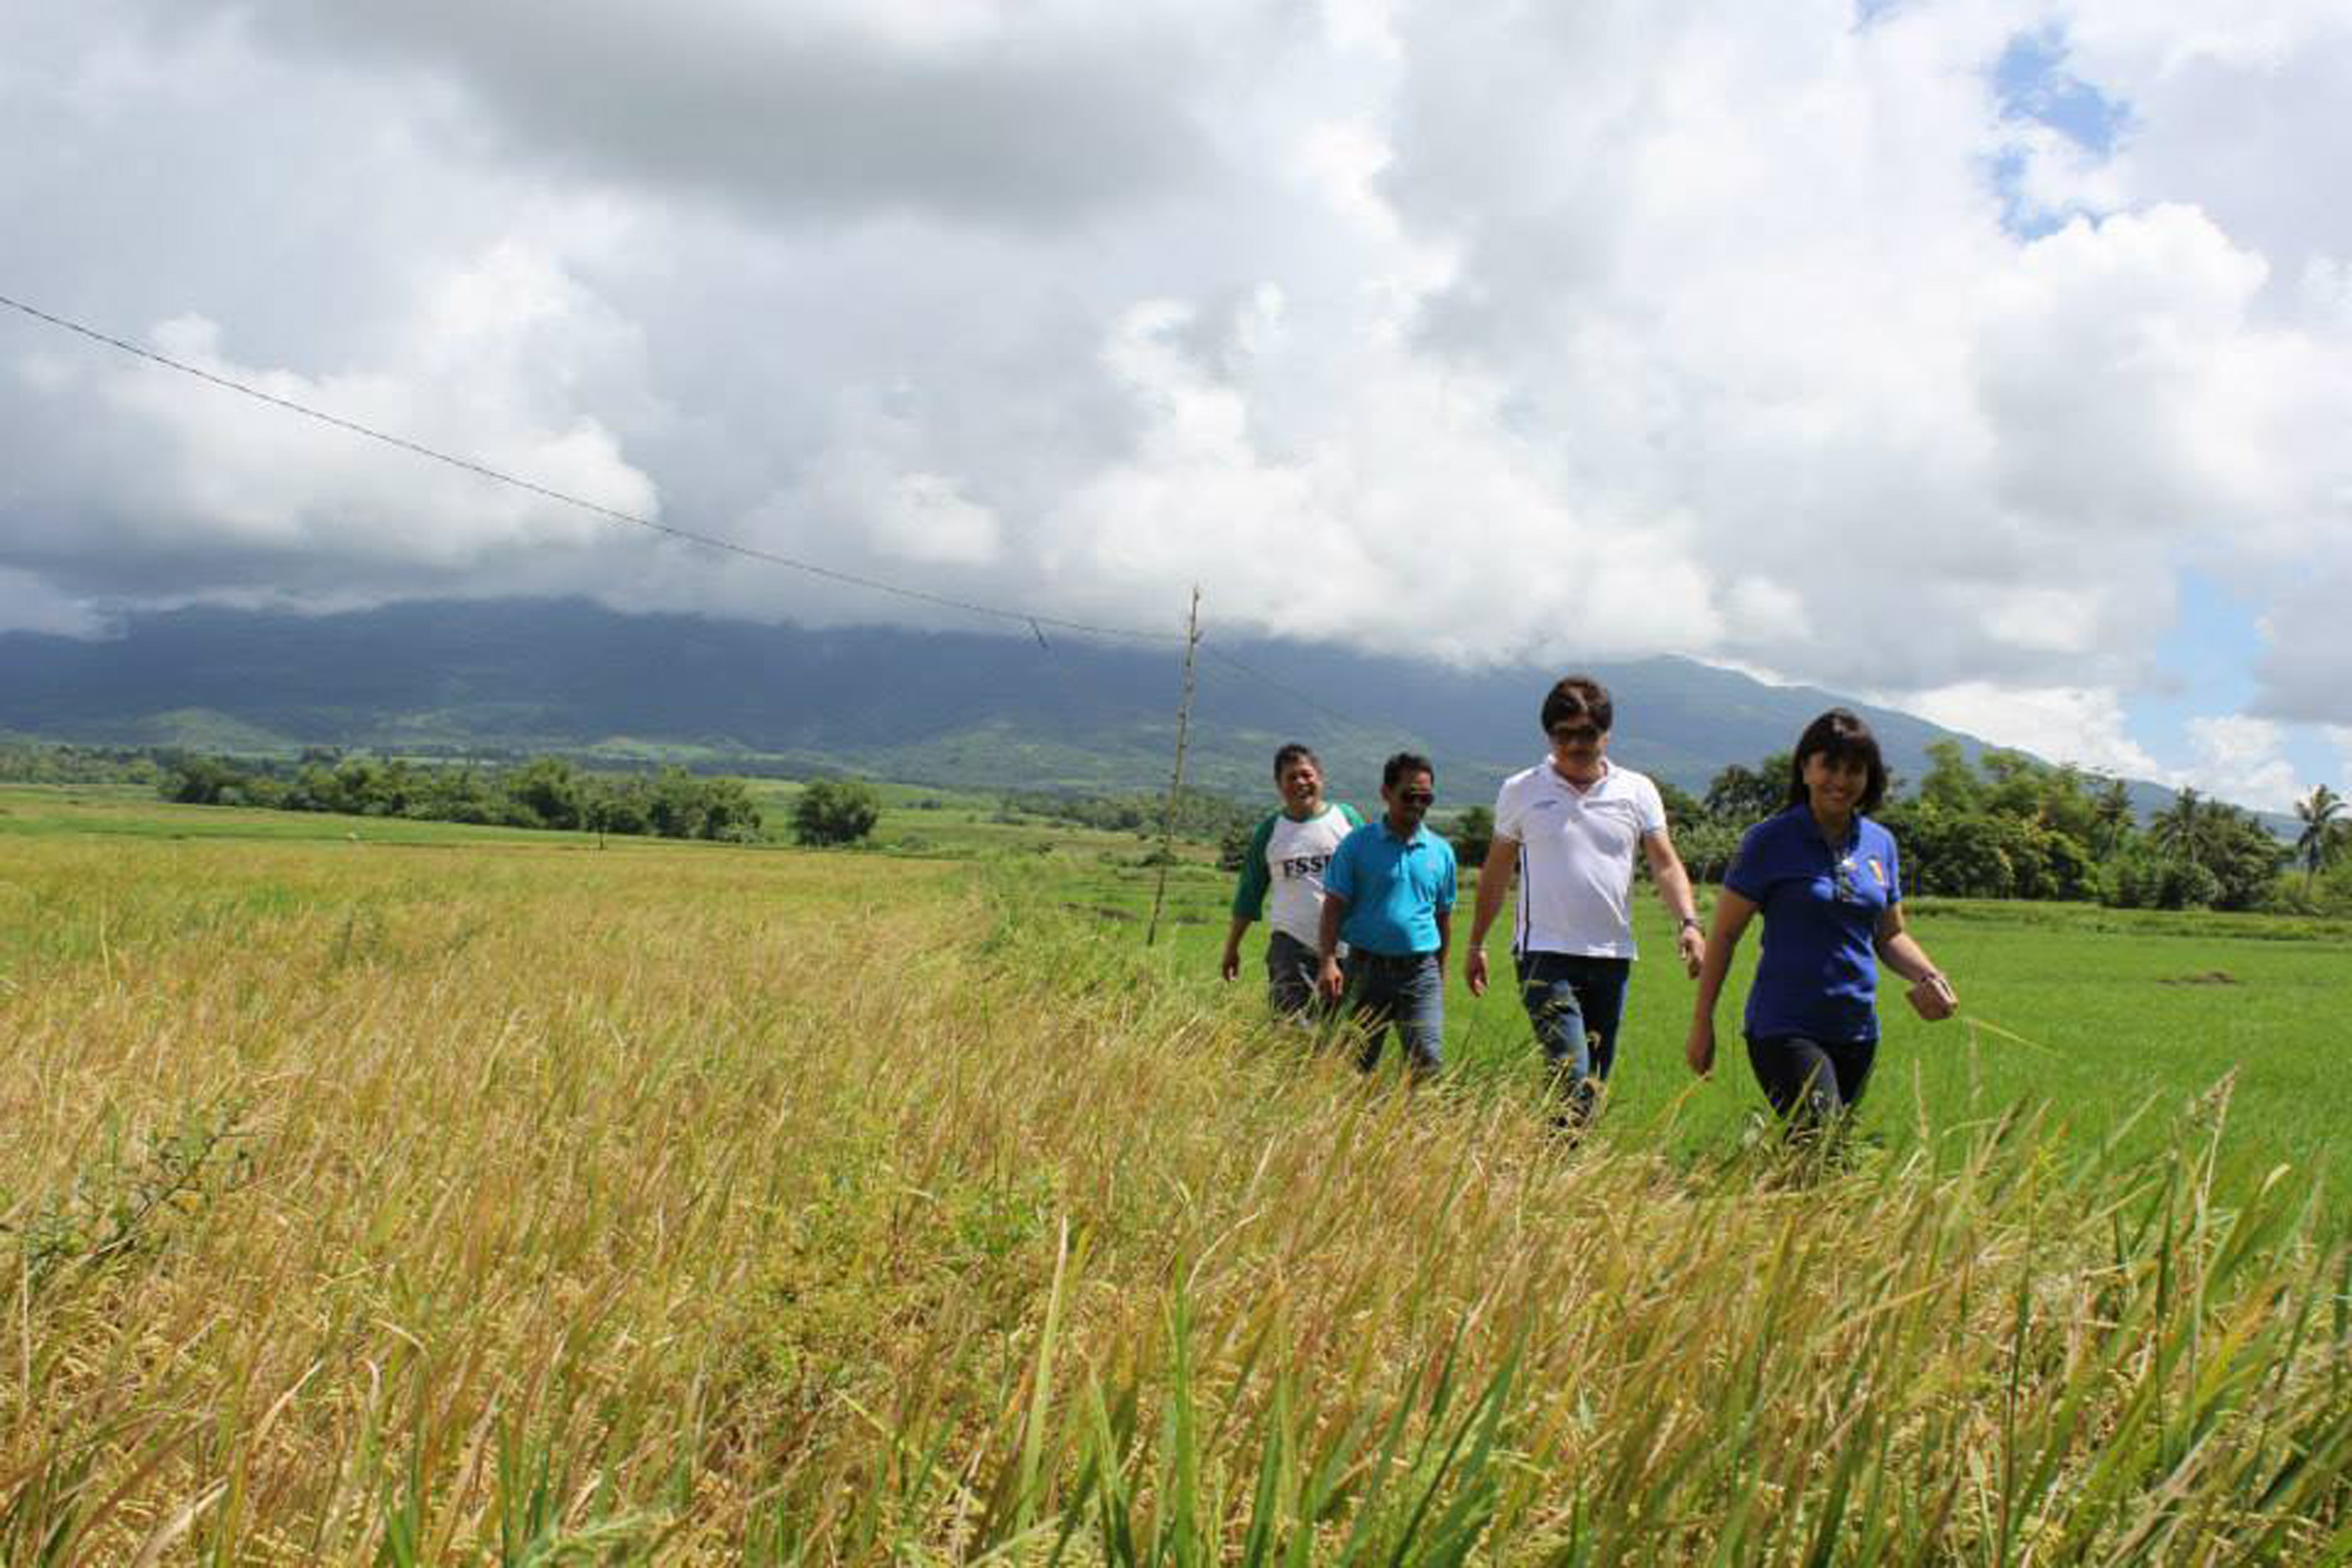 FARMERS' CHAMPION. Leni Robredo is known for often visiting farmers, even if she has to walk long distances. She has initiated several irrigation projects in her district in two years. Photo by Rhaydz Barcia/Rappler